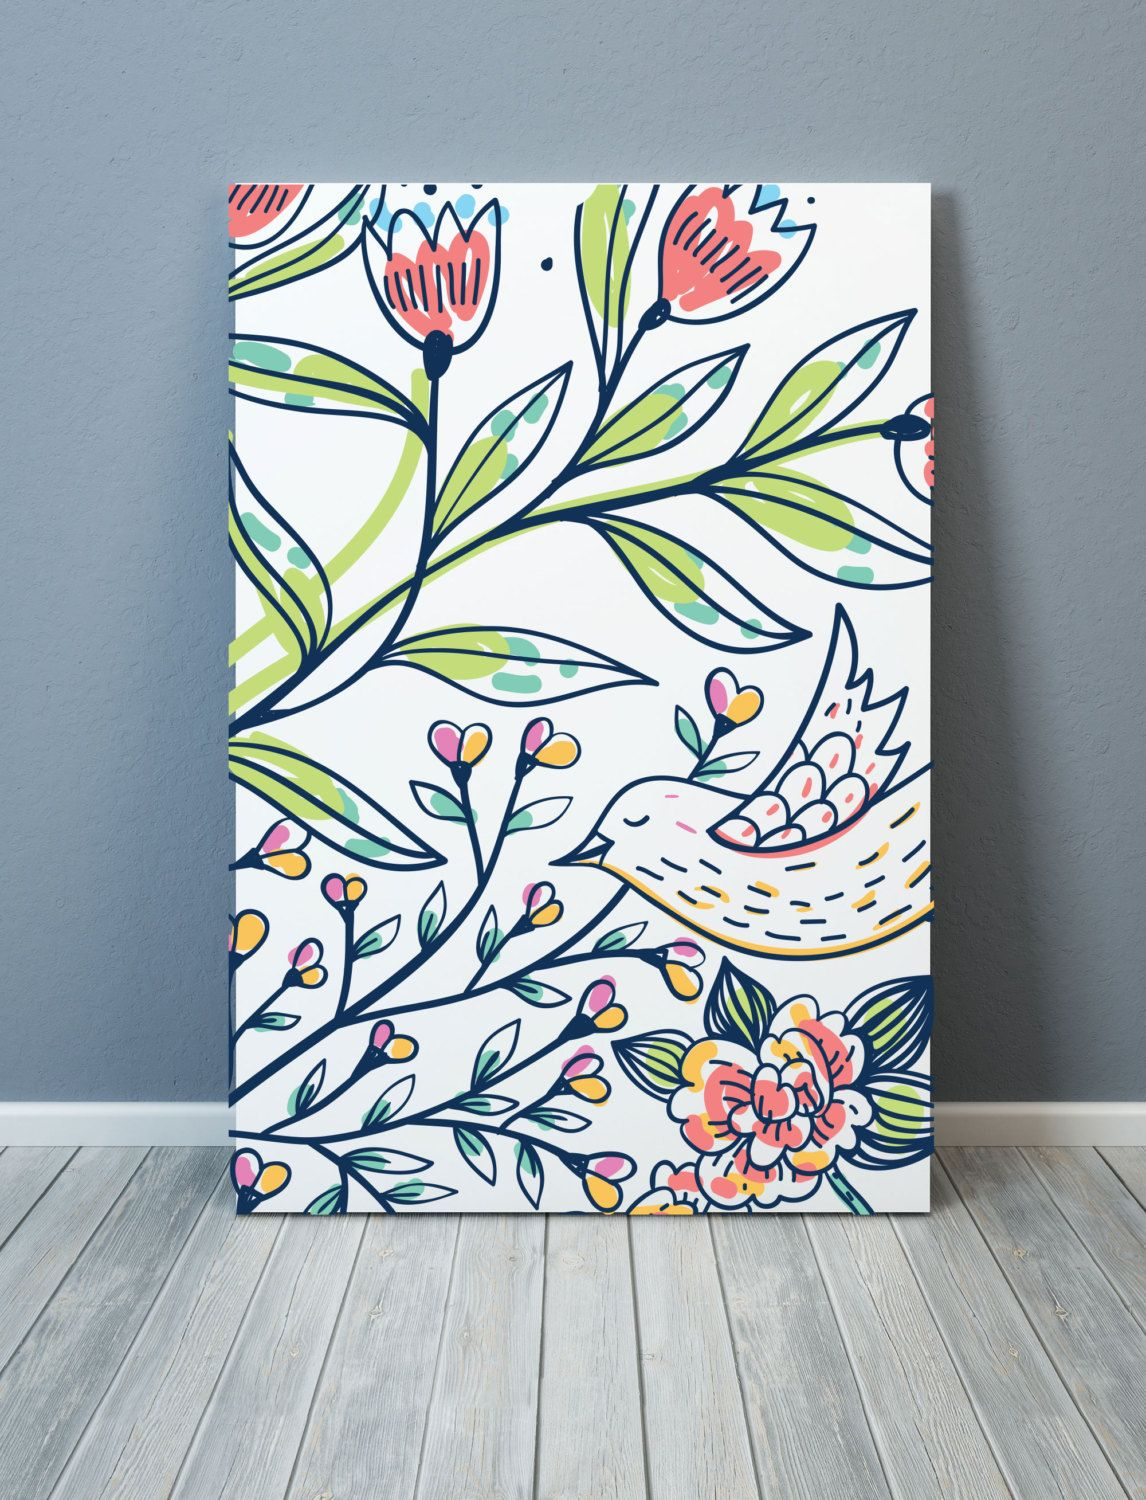 Design poster 70x100 - Design Bird And Flowers Poster A3 50x70 Cm 70x100 Cm Digital Printprintable Poster Wall Art Homedecor Scandinavian Design